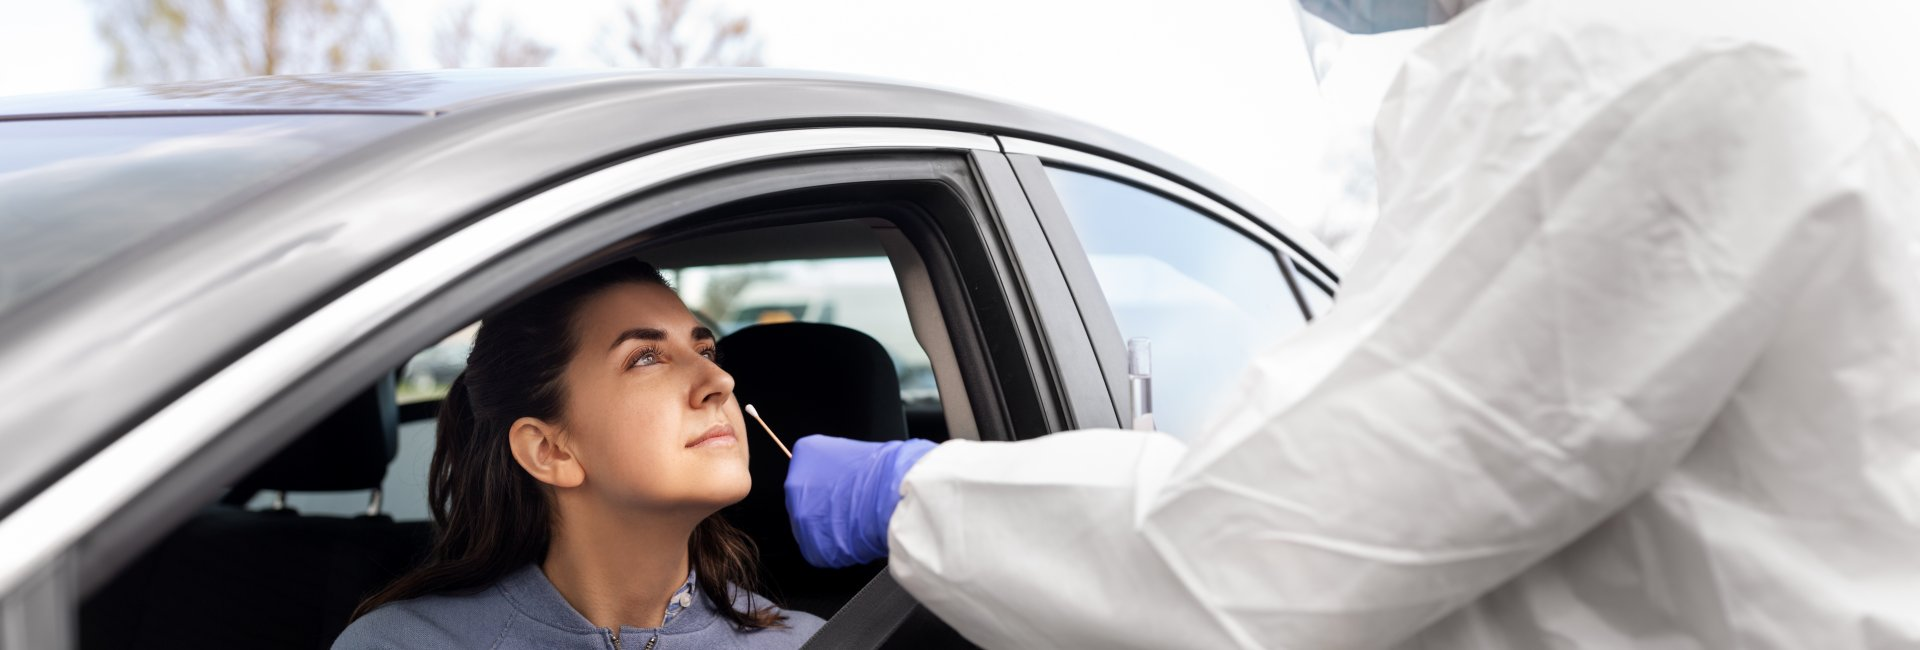 Woman in car with healthcare worker adminstering COVID-19 nasal swab test